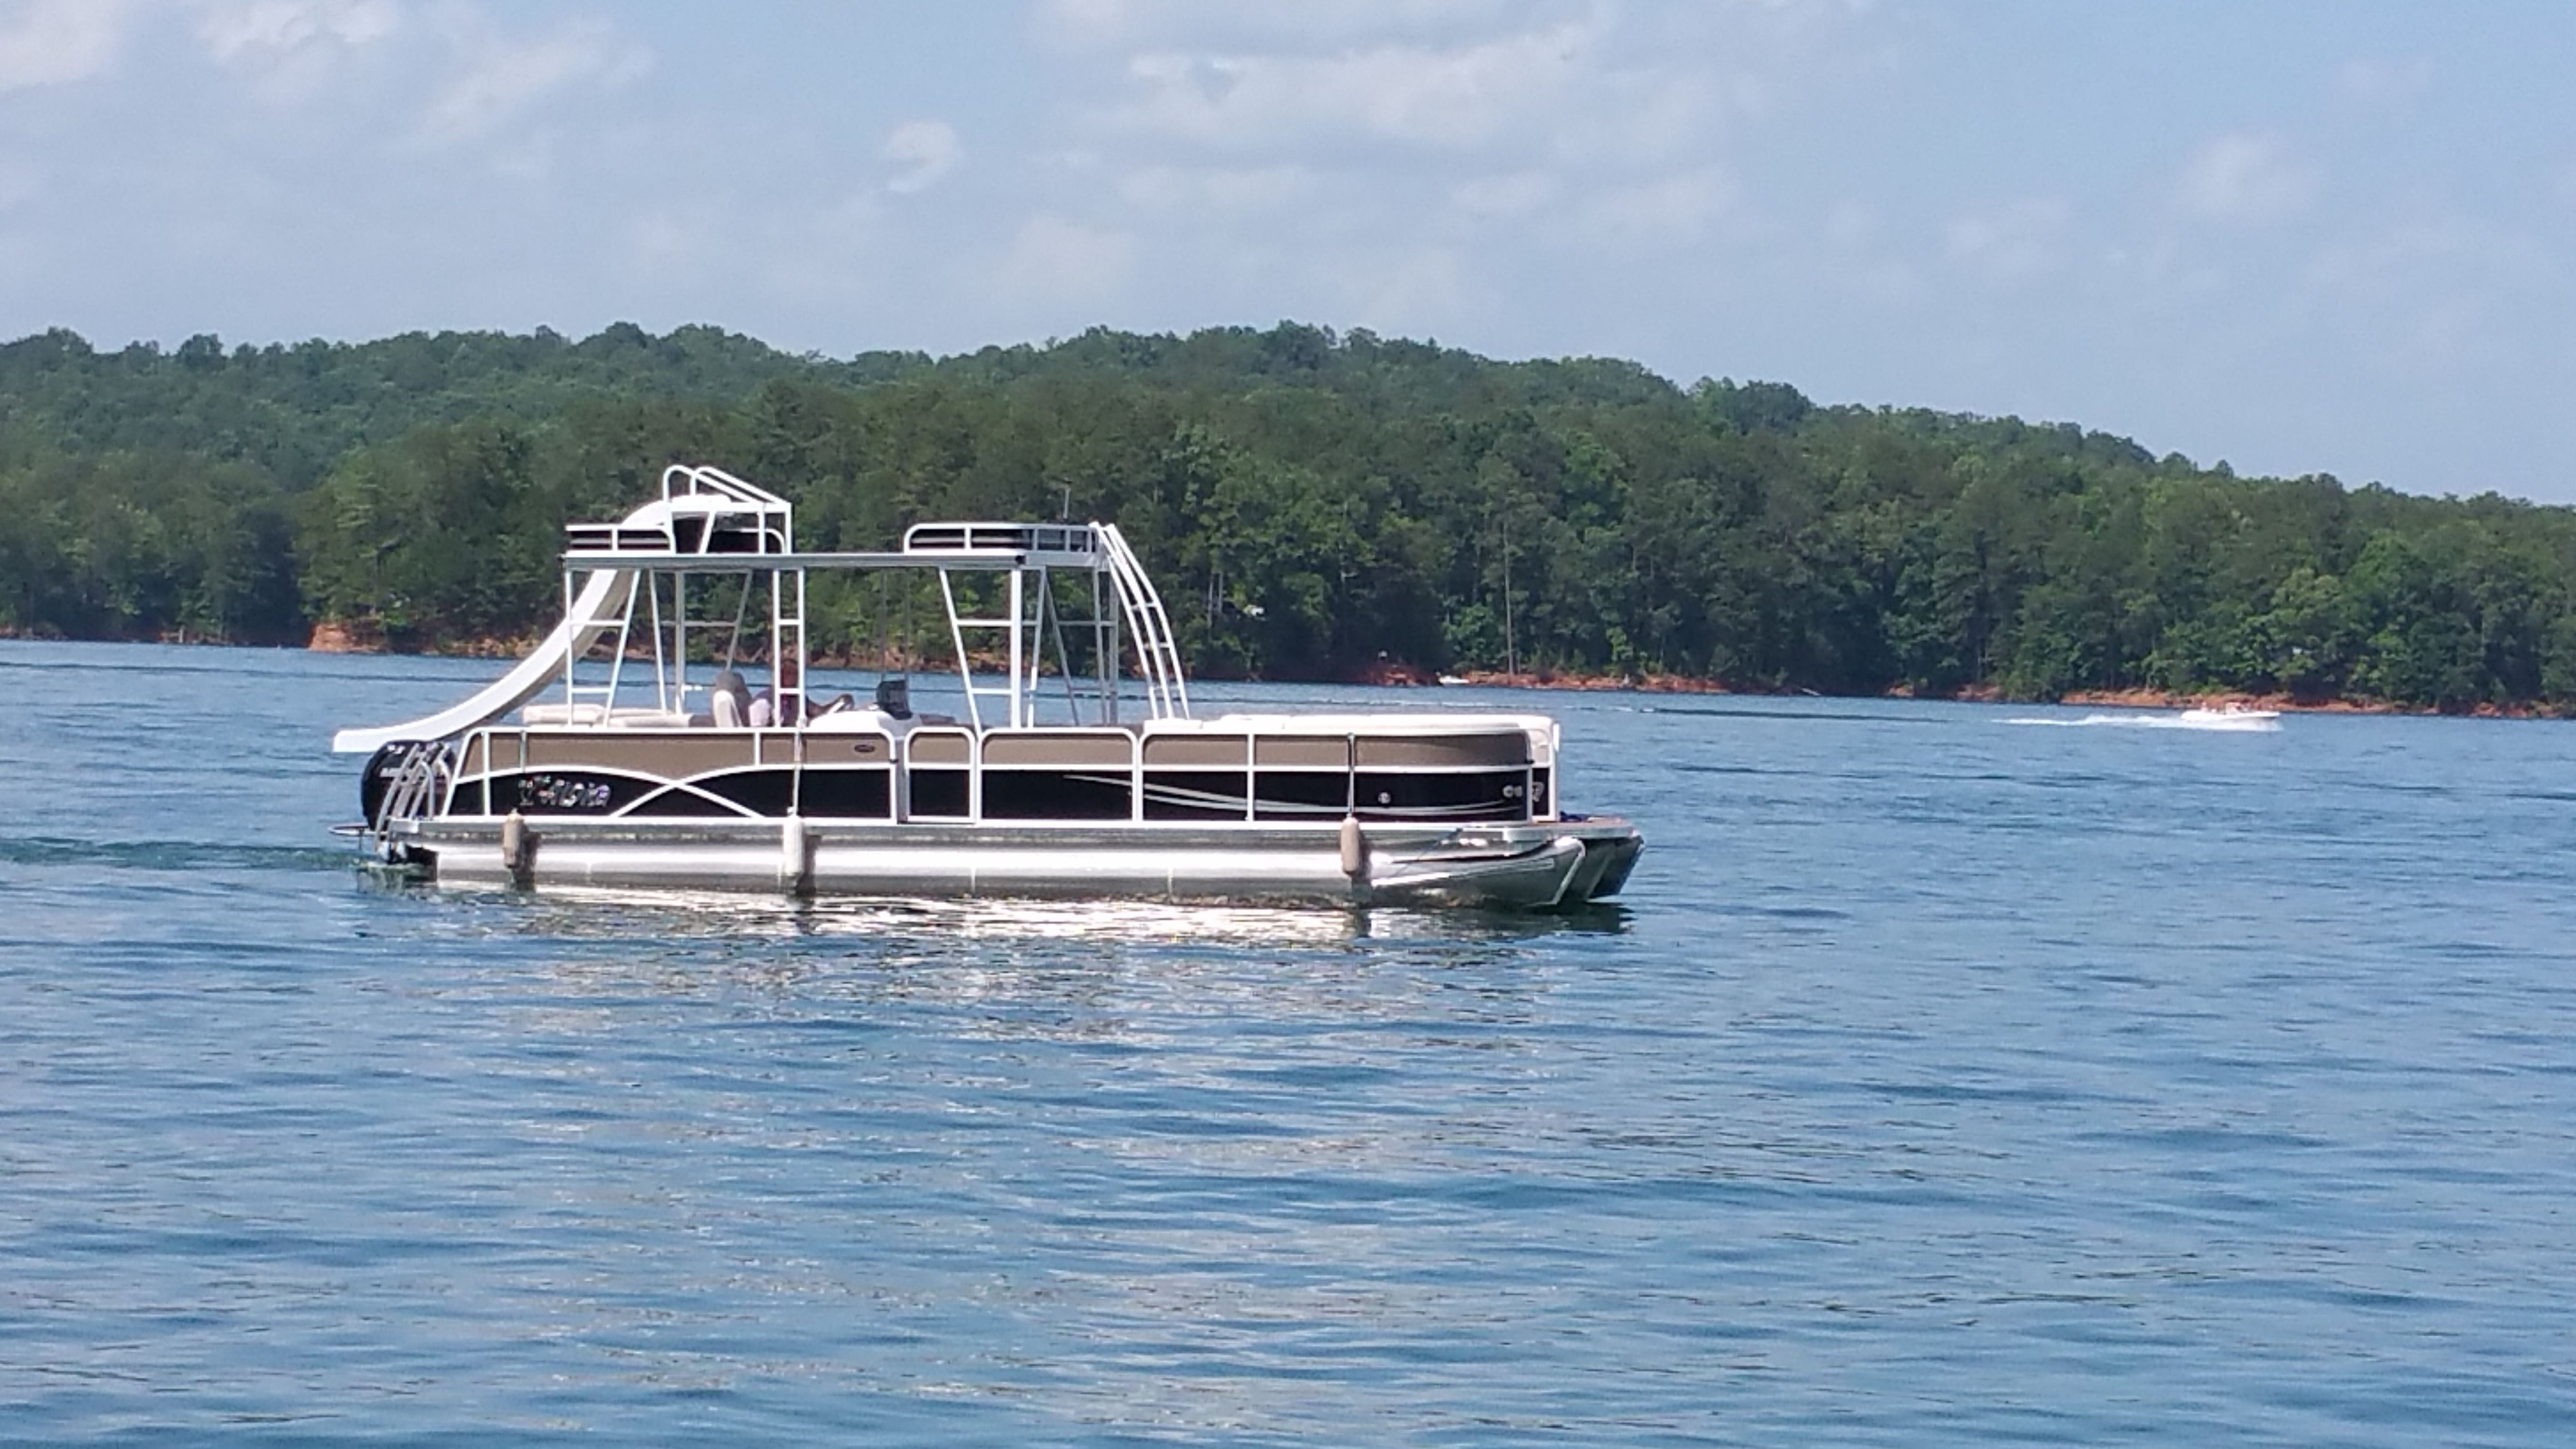 Rent A Pontoon Boat From Carters Lake Marina For A Day On The Lake